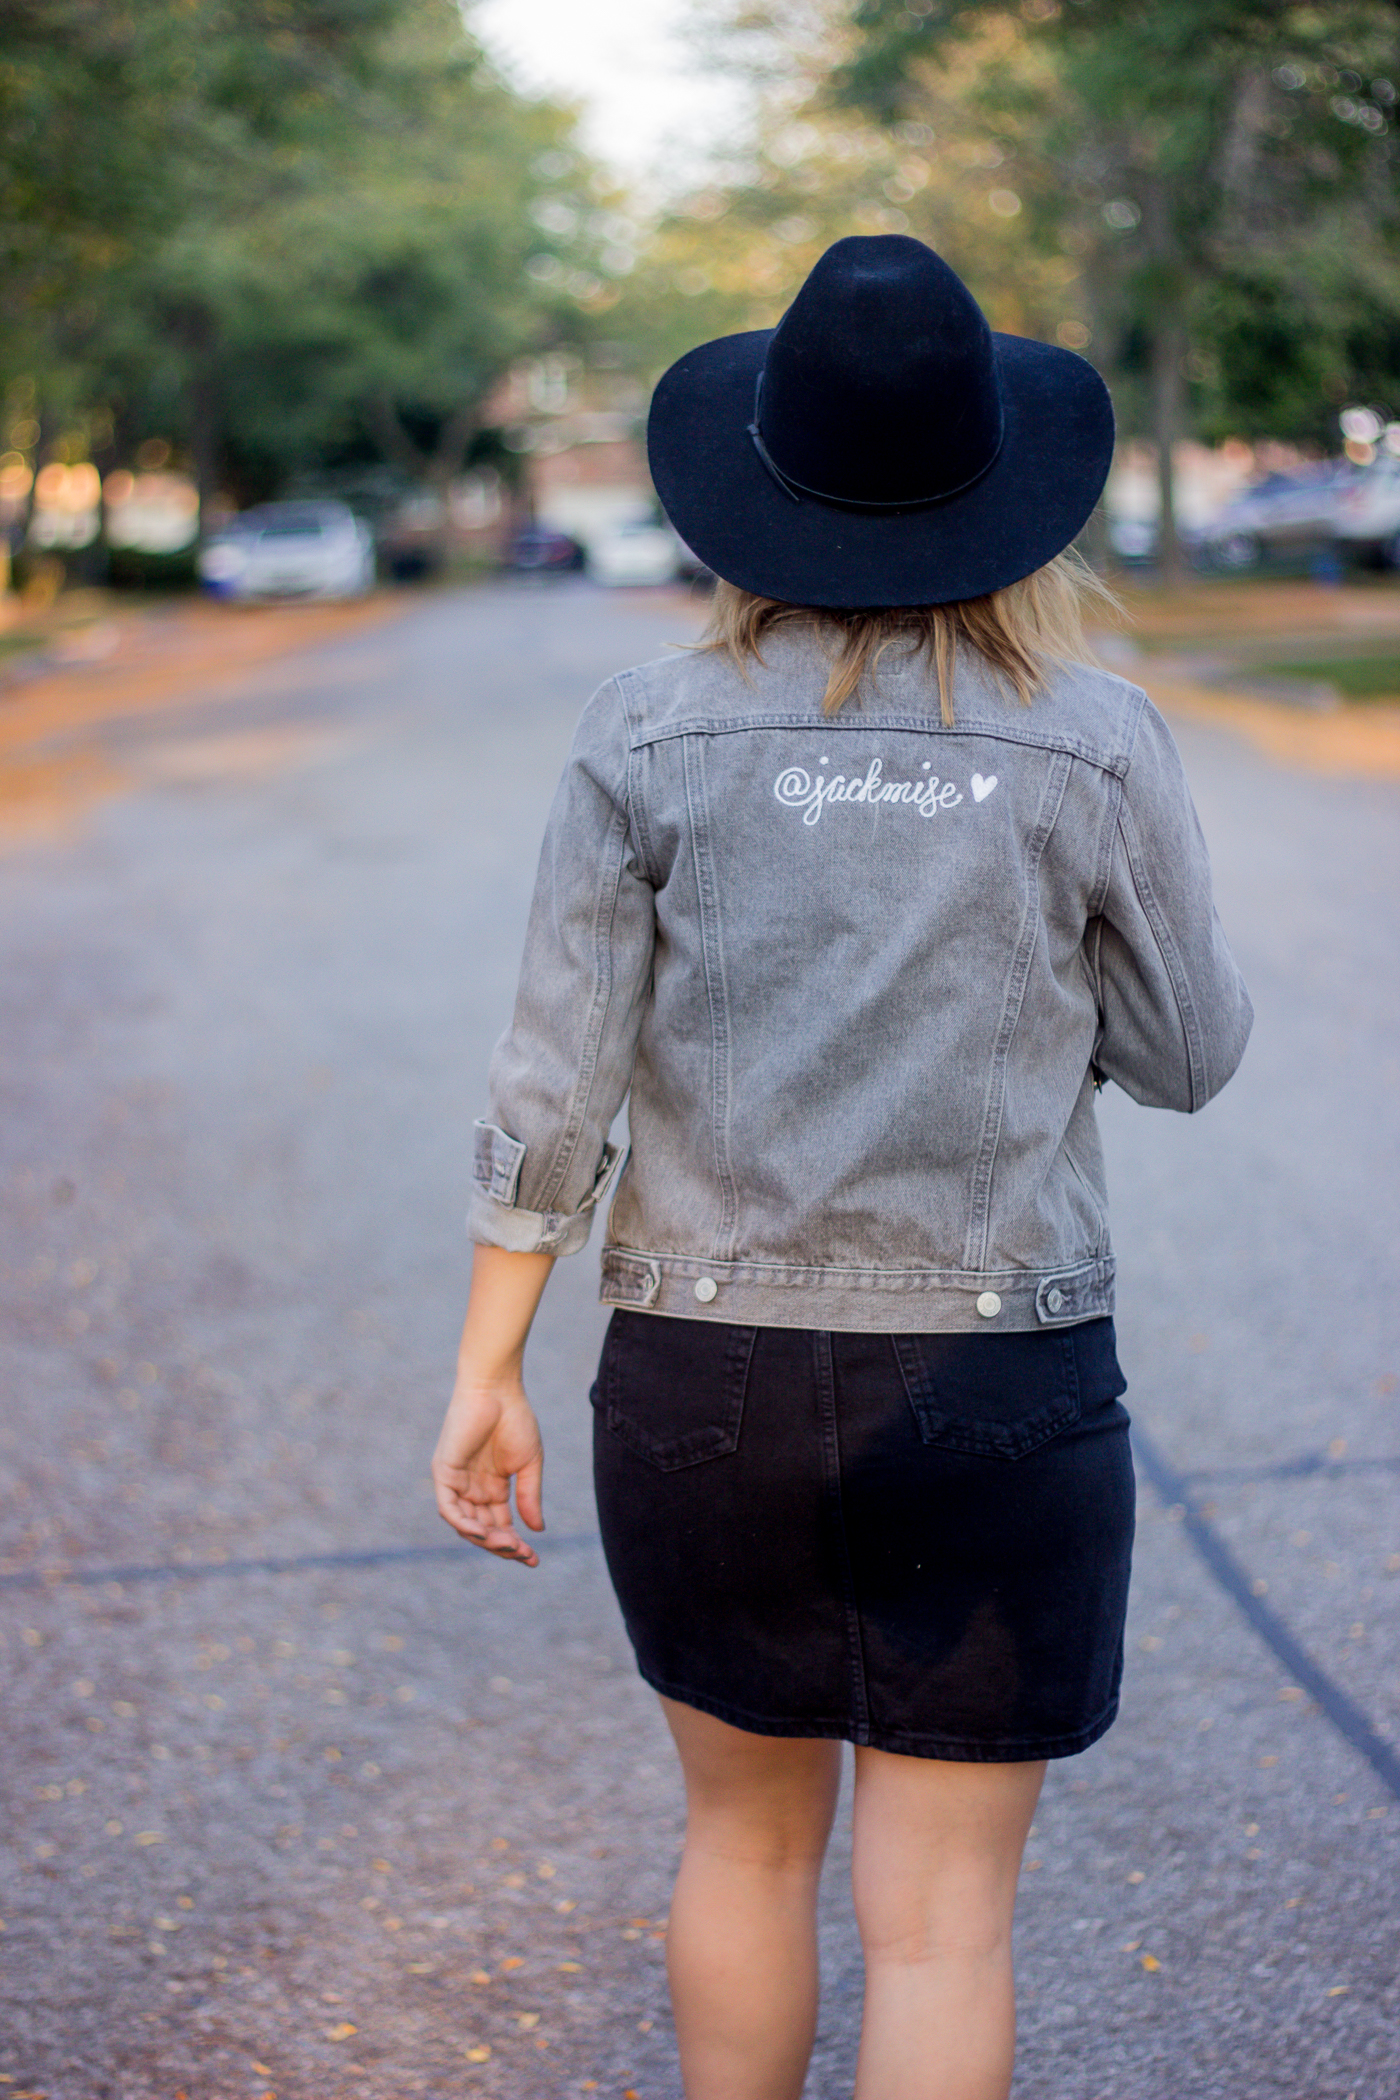 Fashion blogger Jackie Goldhar from Toronto is wearing a custom embroidered grey denim jacket from Gap, with her social handle, @jackmise